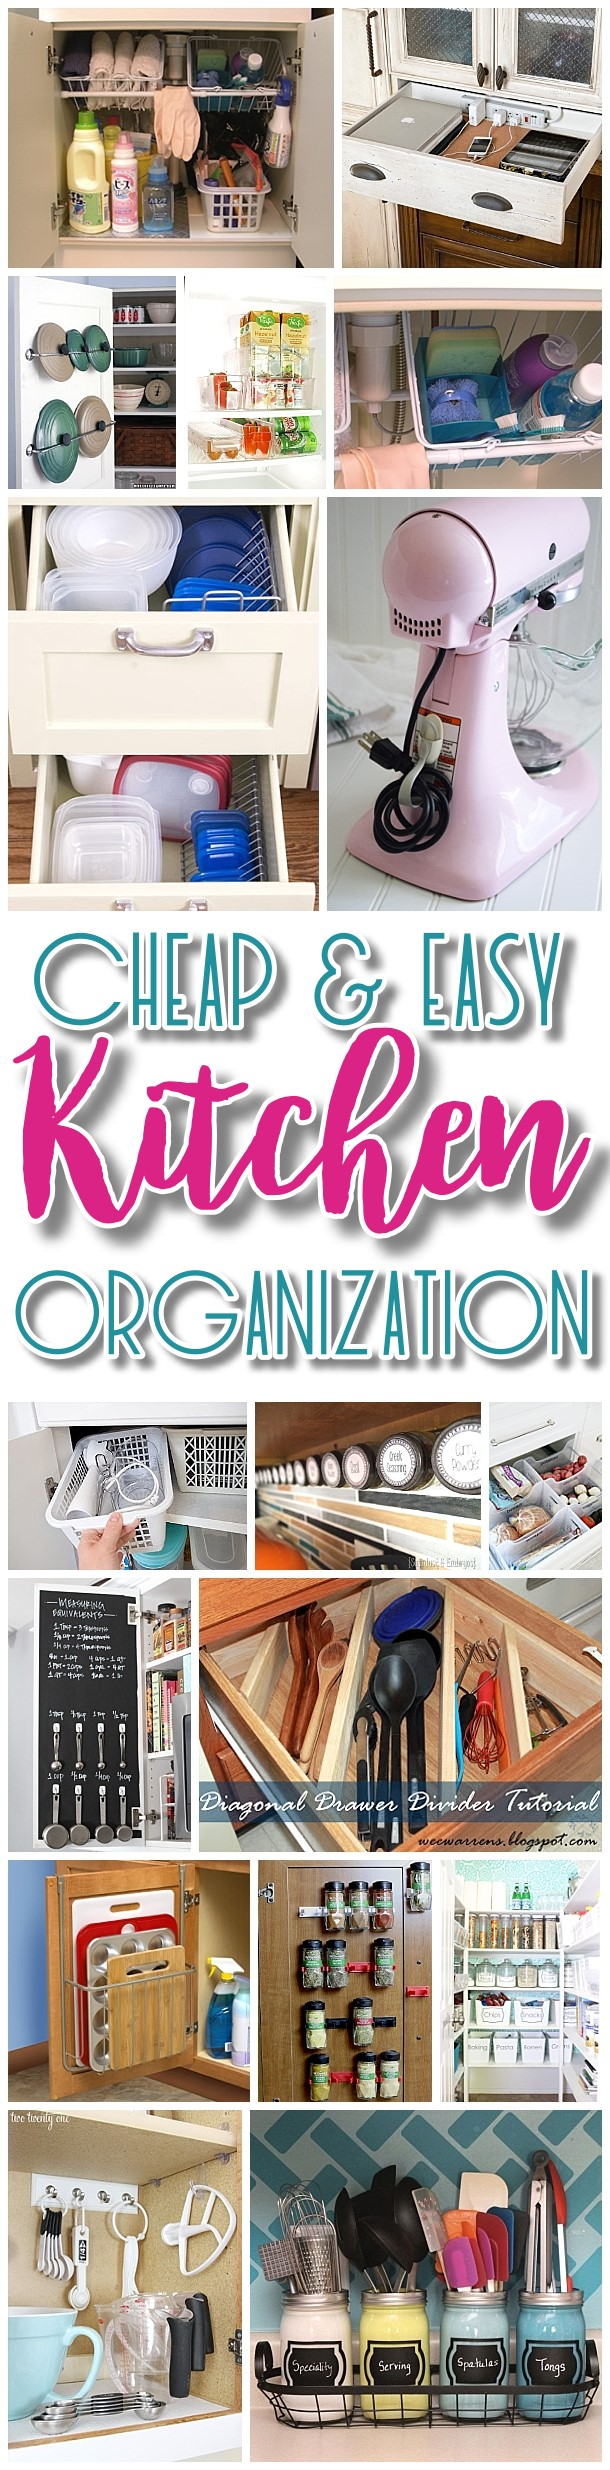 EASY Budget Friendly Ways to Organize your Kitchen {Quick Tips, Space Saving Tricks, Clever Hacks & Organizing Ideas} via Dreaming in DIY #kitchenhacks #kitchenorganization #kitchenhacks #kitchenideas #organizethekitchen